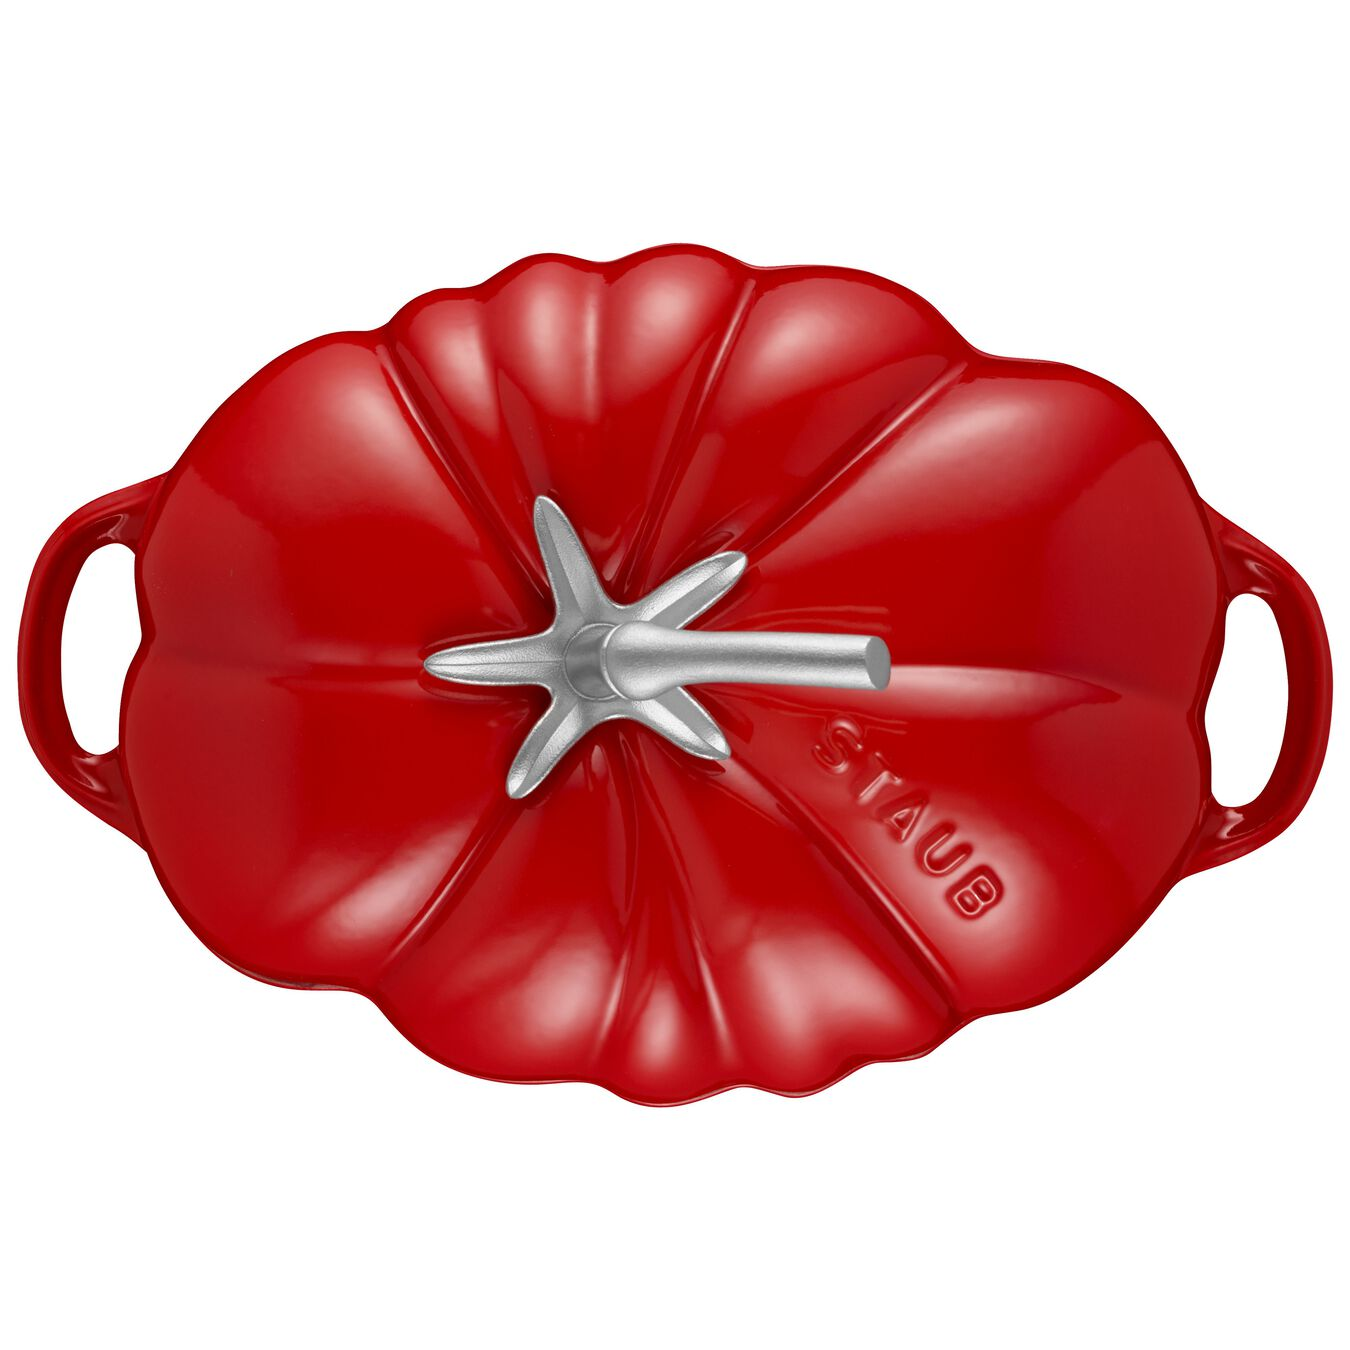 Cocotte 25 cm, Tomate, Kirsch-Rot, Gusseisen,,large 2